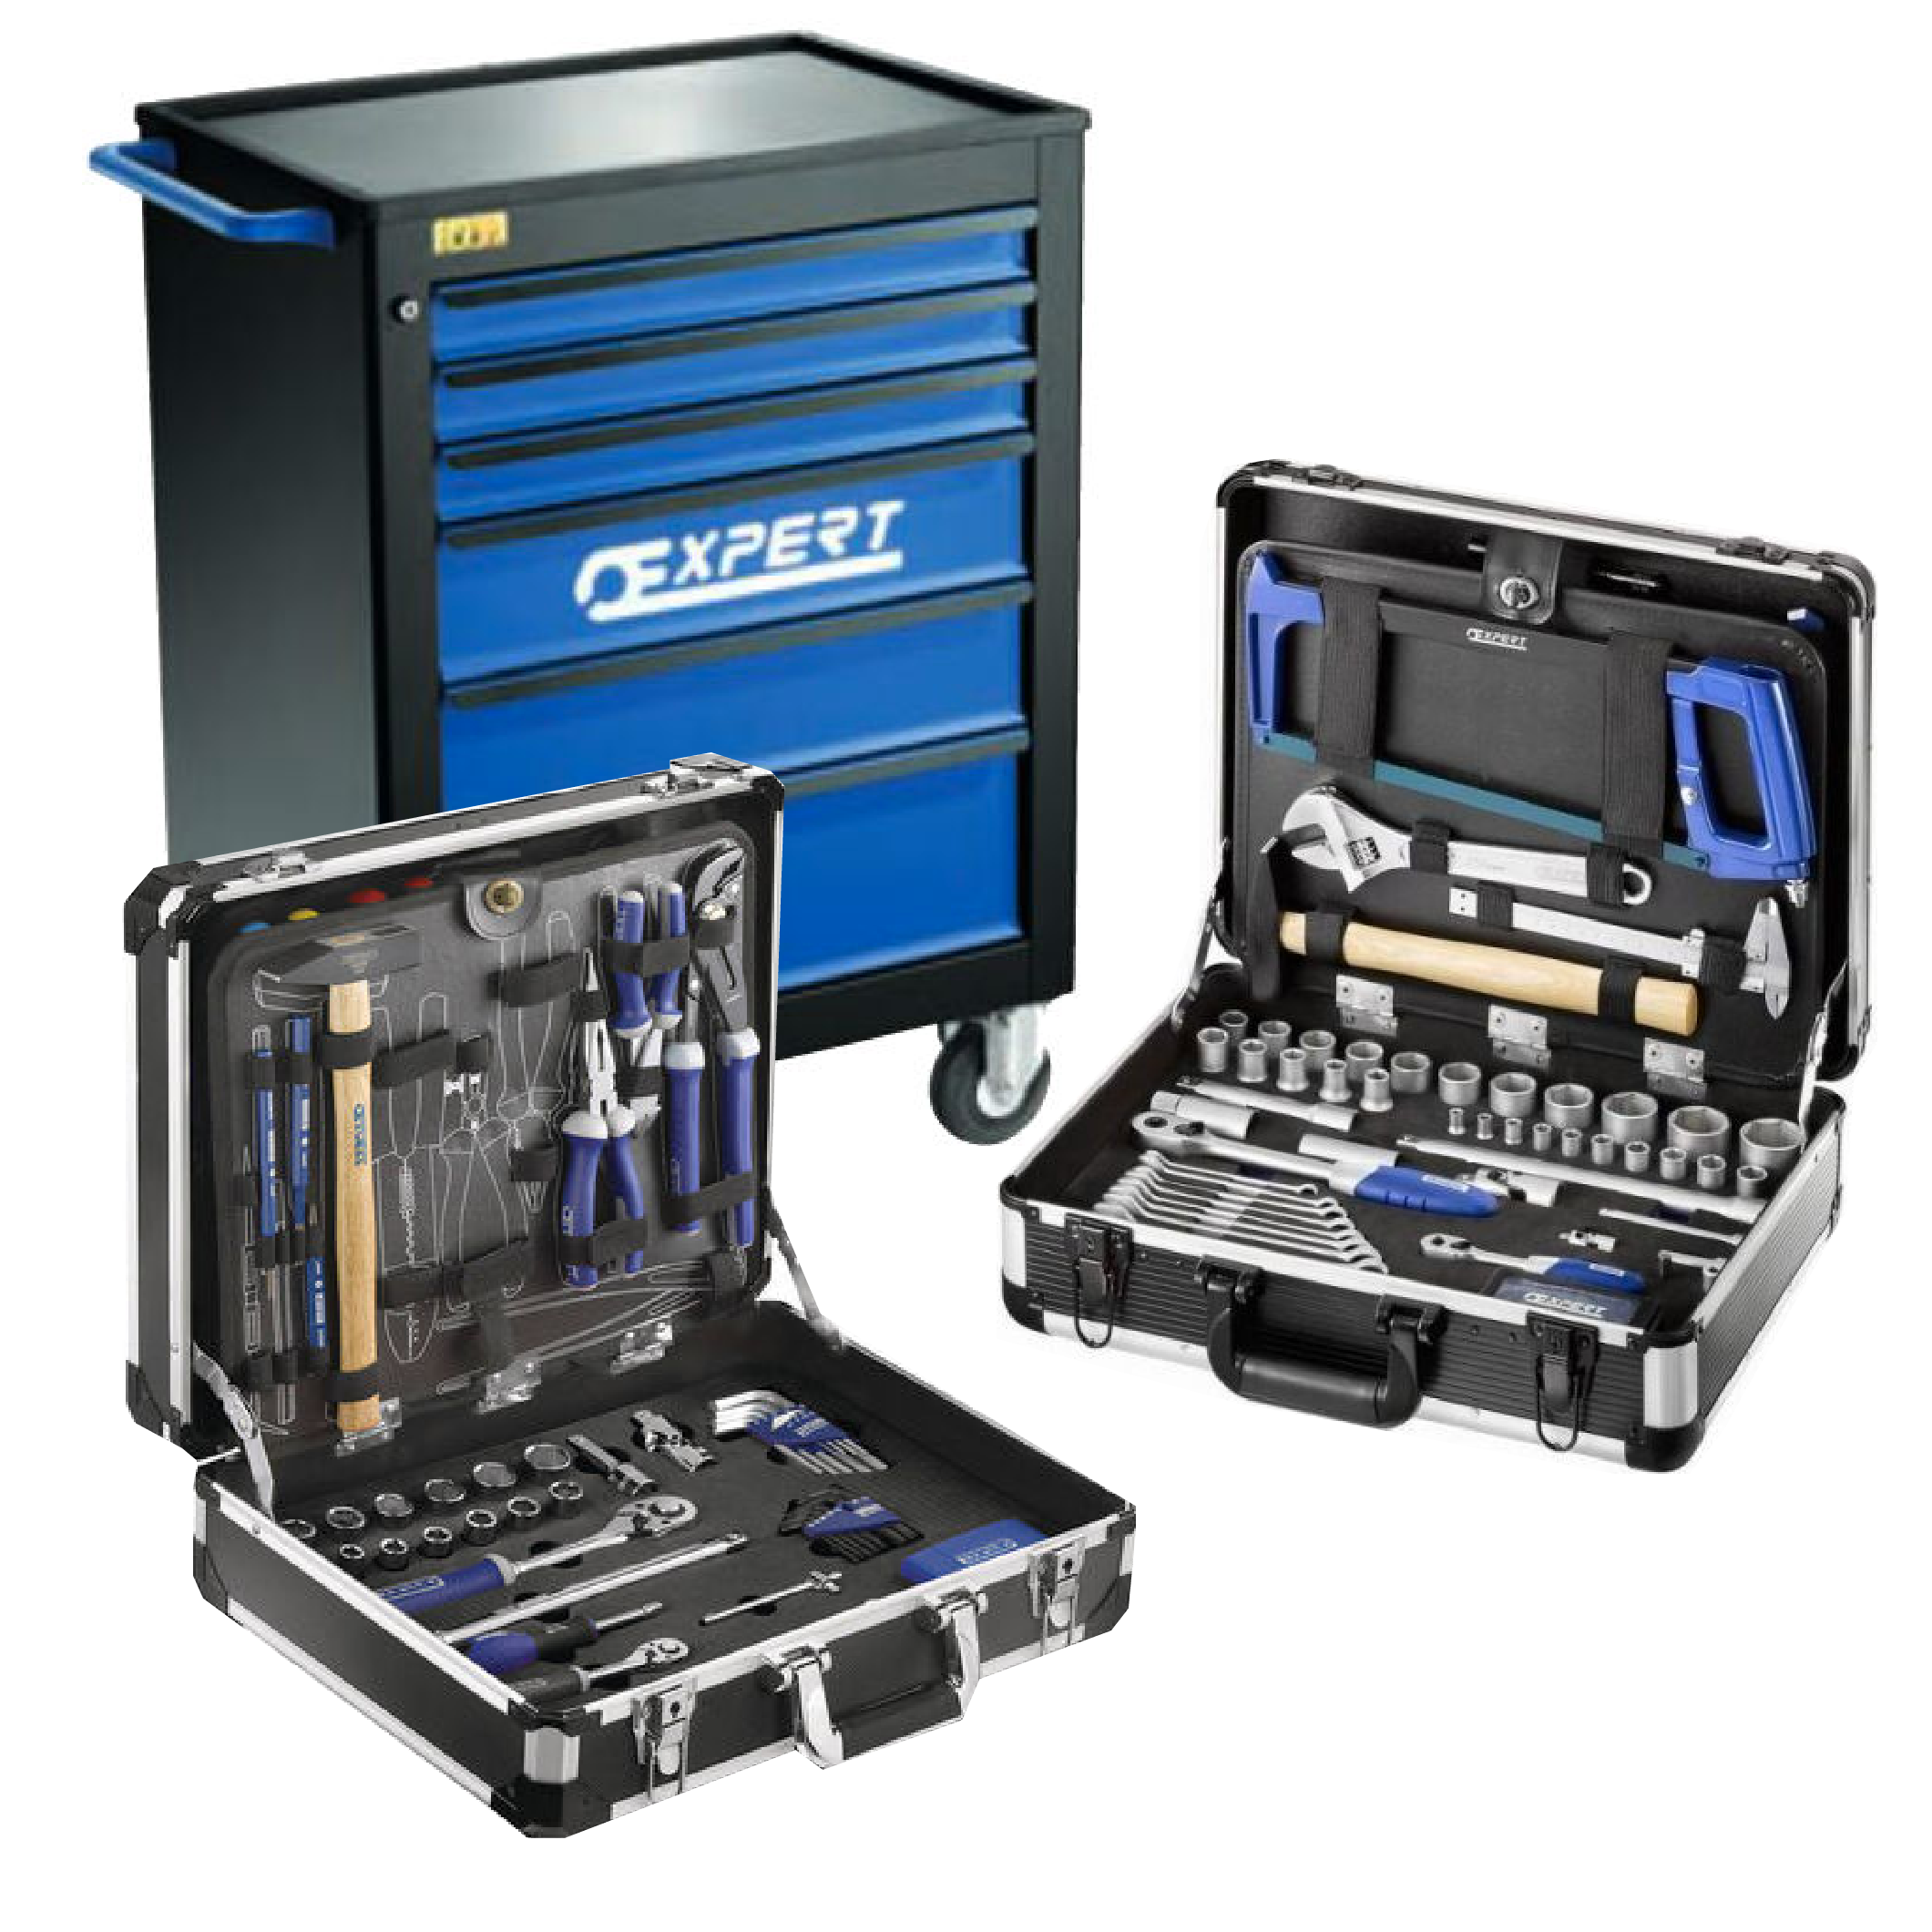 Authorised Tool Sets and Accessories Distributor In Dubai UAE